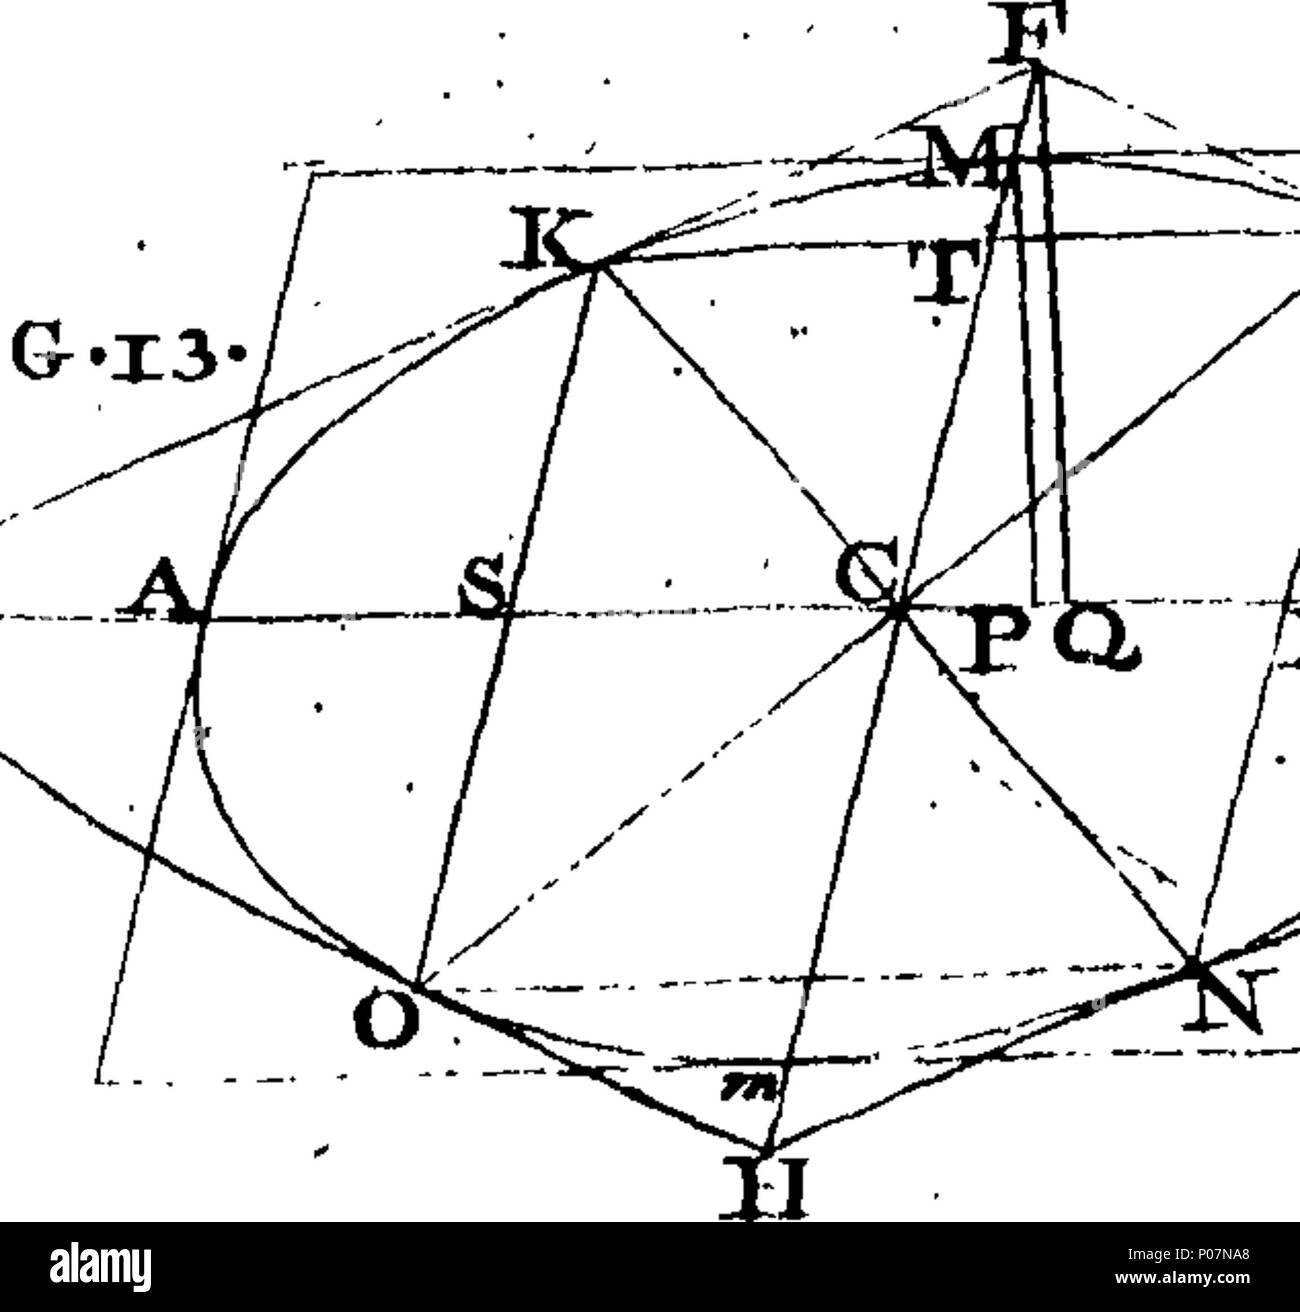 . English: Fleuron from book: A geometrical treatise of the conic sections, in which the properties of the sections are derived from the nature of the cone, in an easy manner, and by a new method. By Hugh Hamilton, A. M. Fellow of Trinity College, Dublin, and of the Royal Society, London, Now Dean of Armagh. Translated from the Latin original into English. 111 A geometrical treatise of the conic sections Fleuron T125962-19 - Stock Image